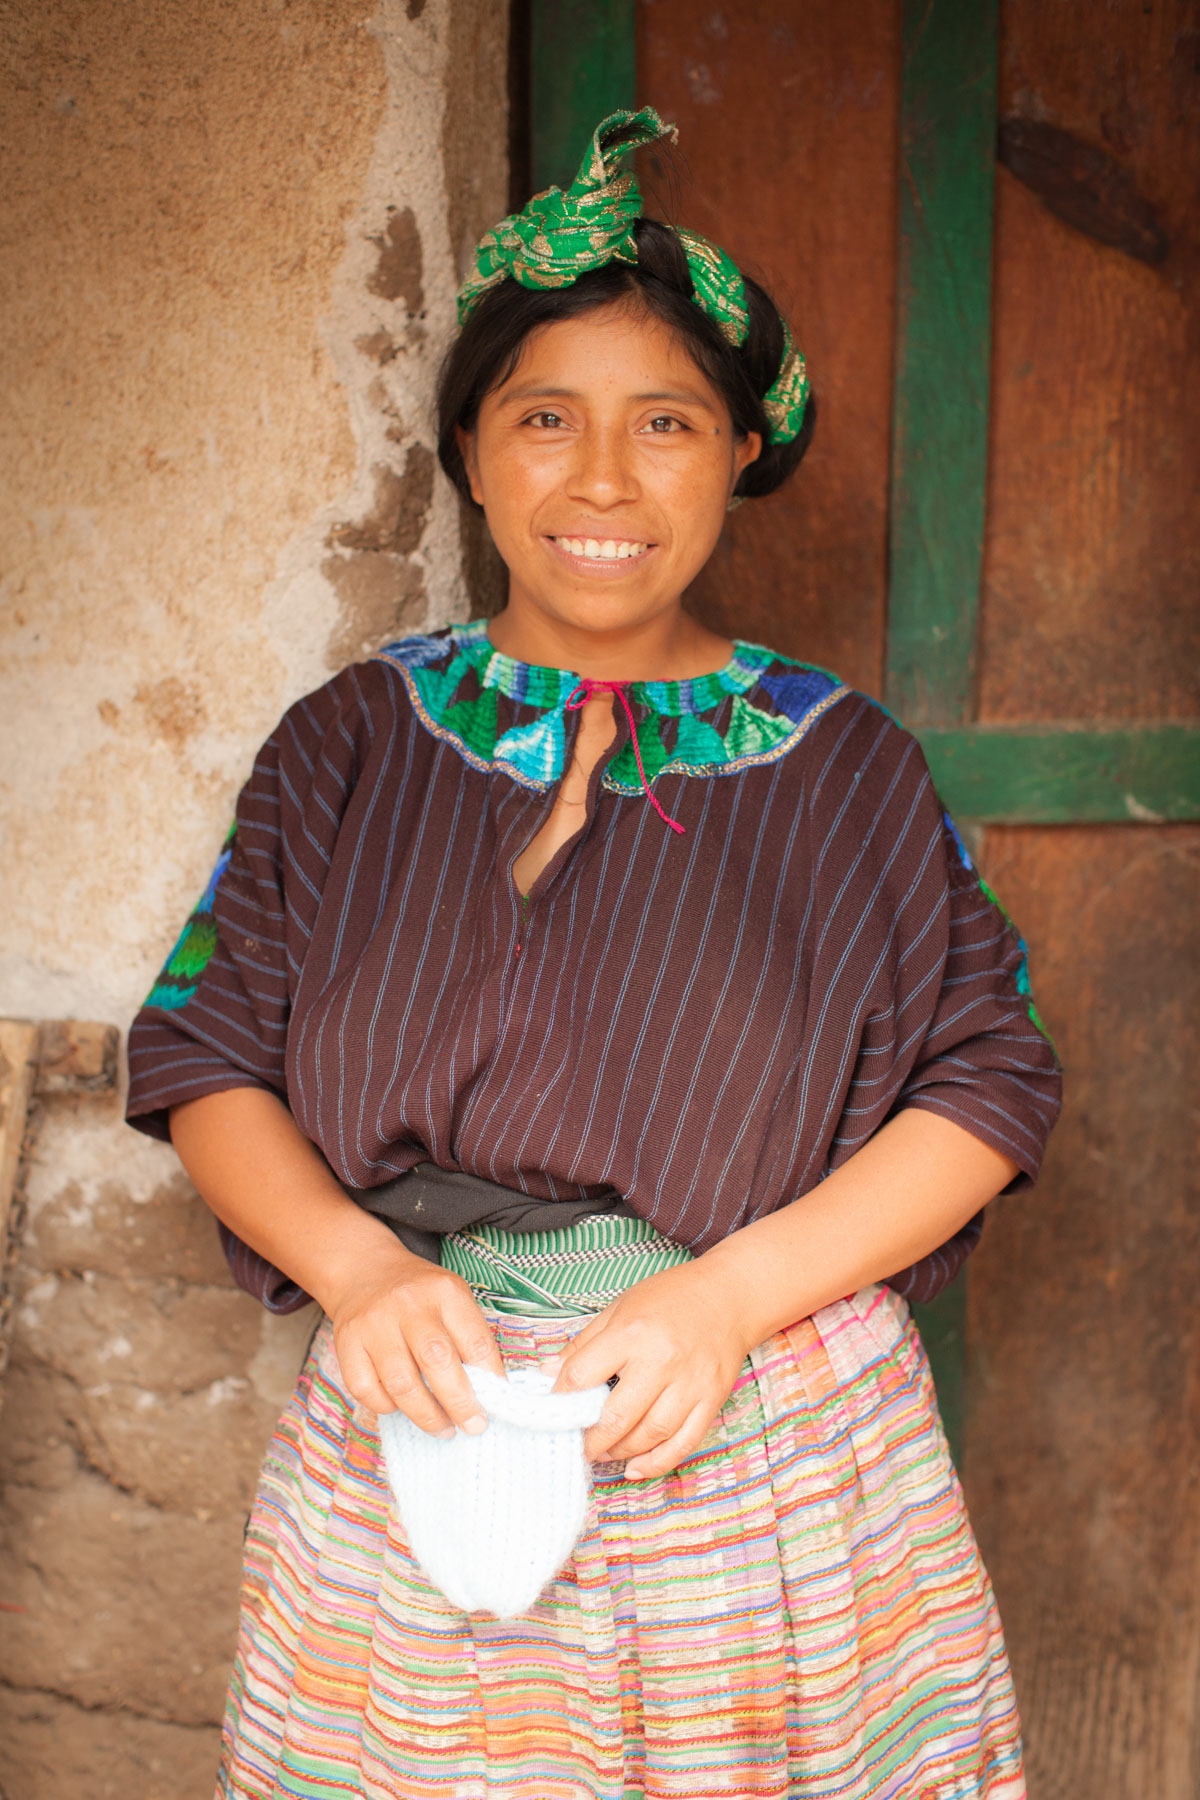 Mayan Guatemalan woman with handmade baby hat - Vezzani Photography